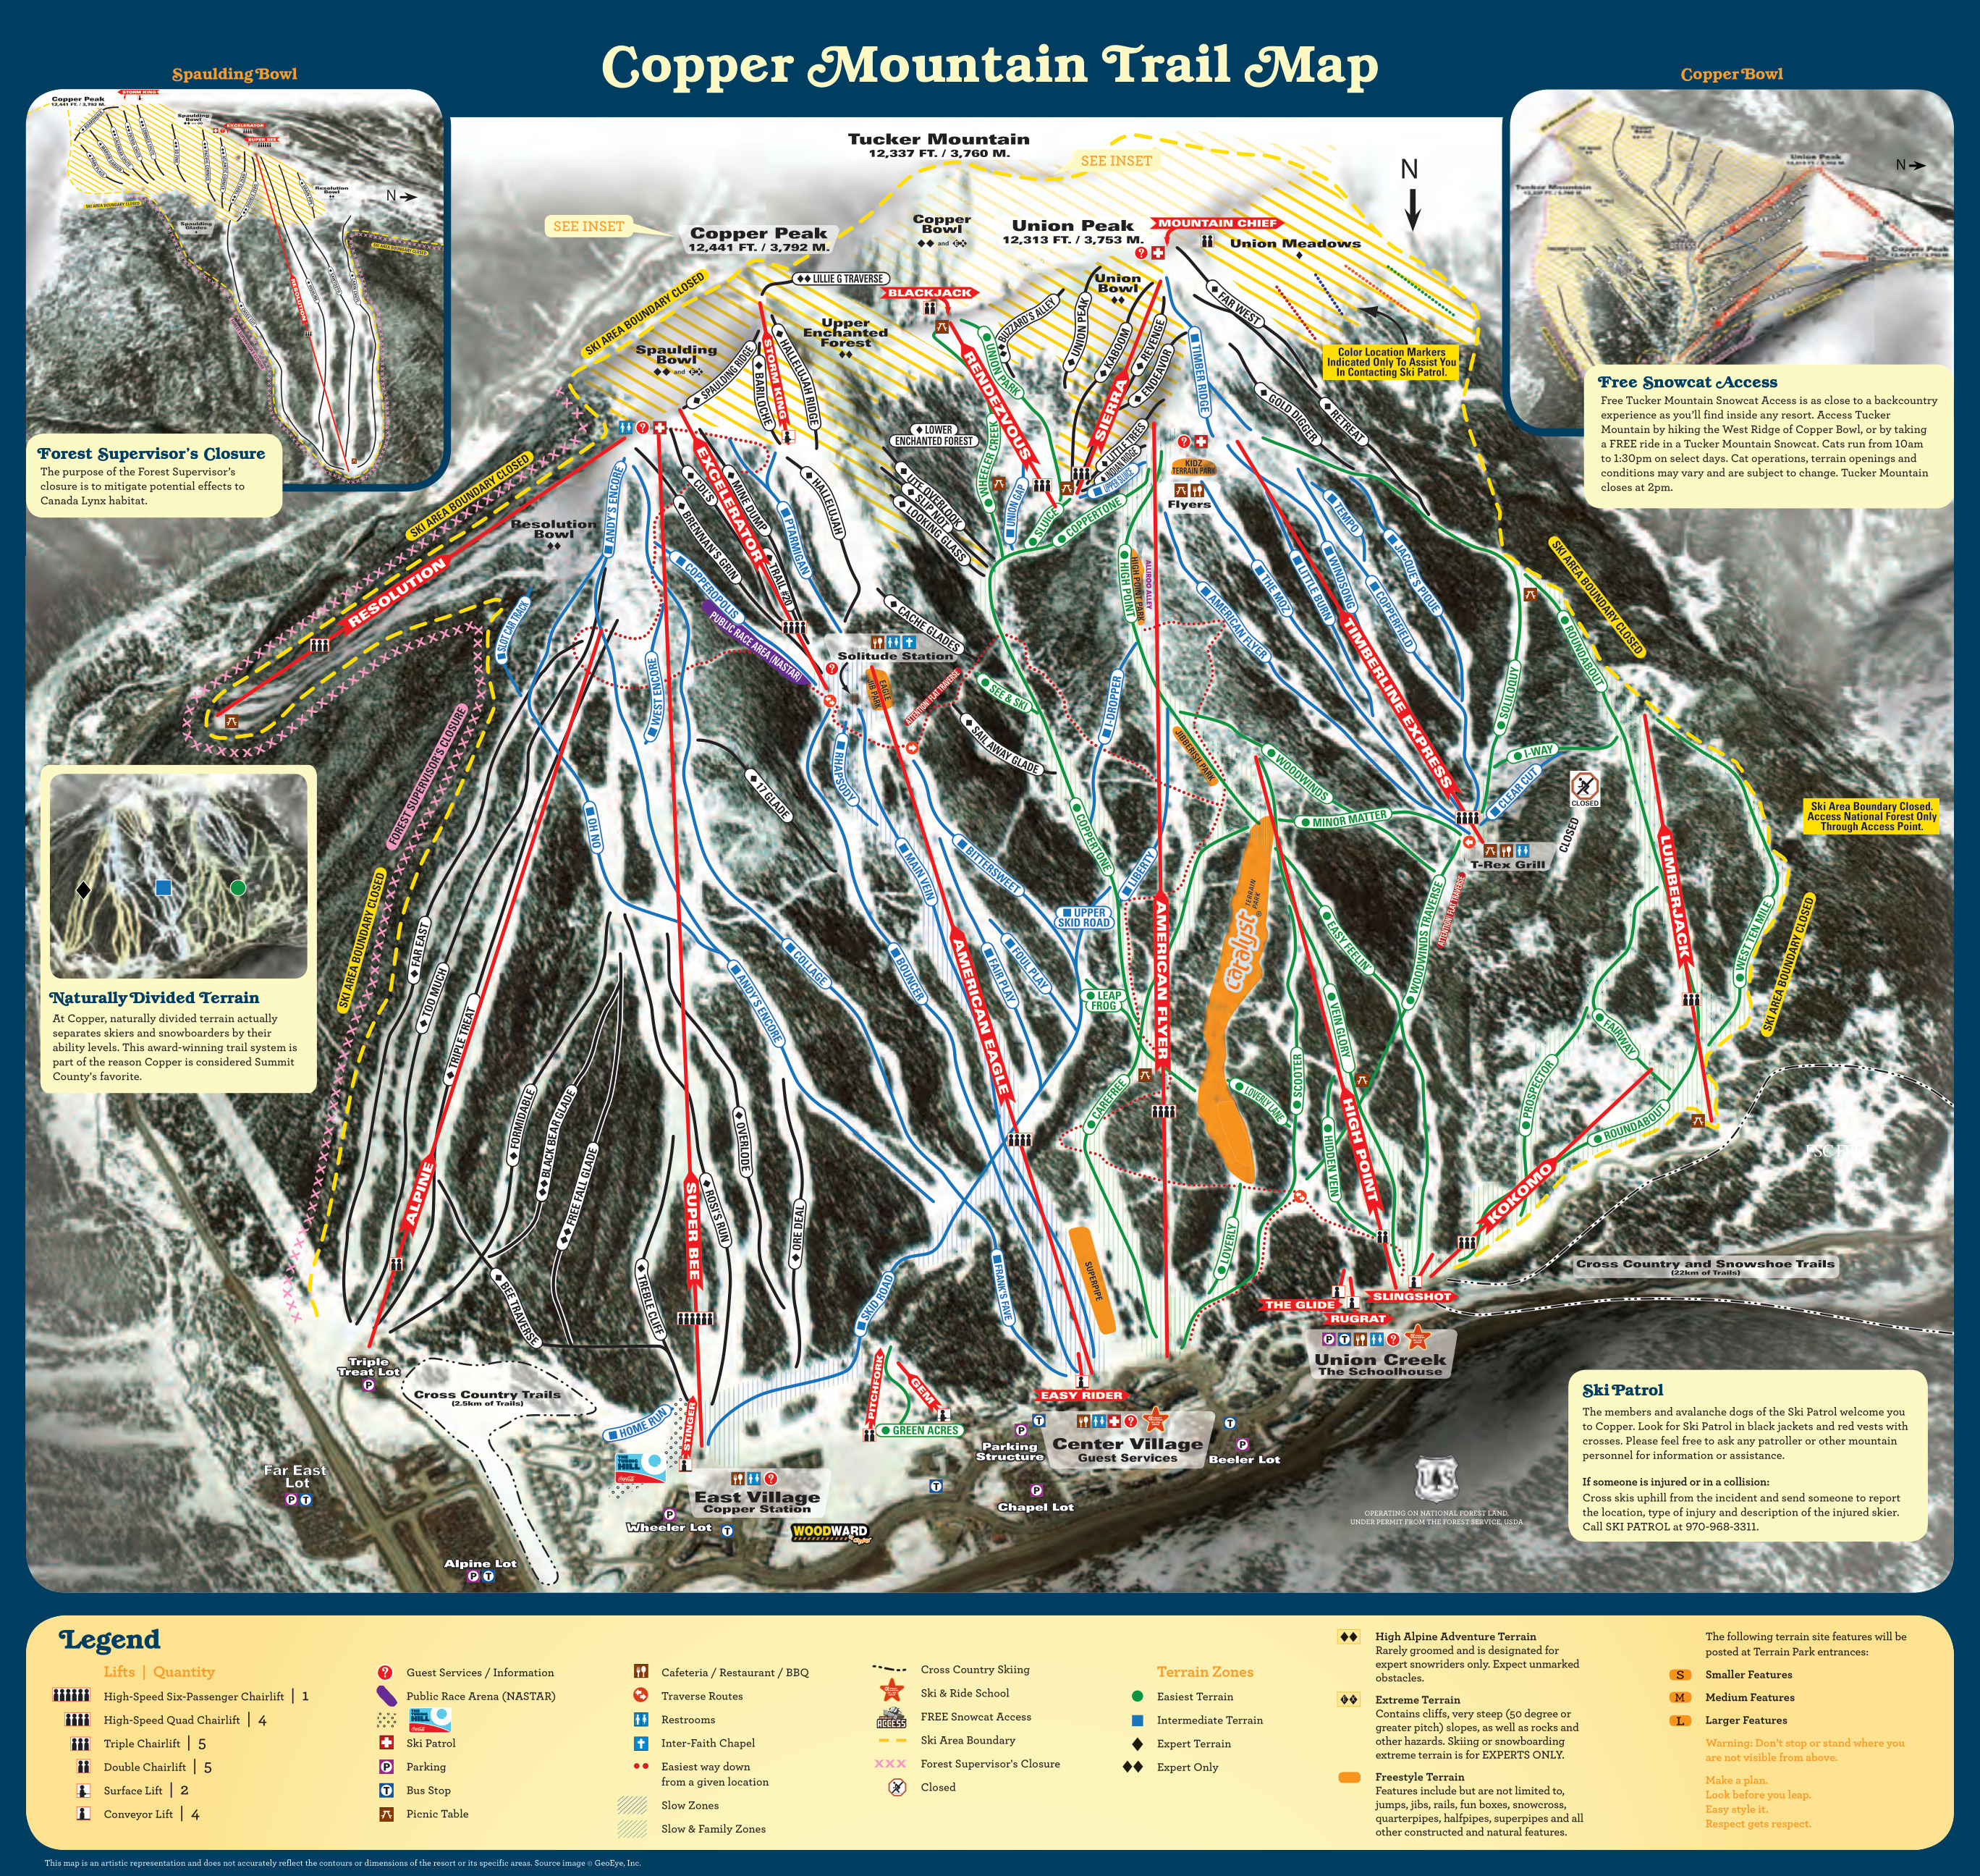 Copper Mountain Map Copper Mountain Resort   SkiMap.org Copper Mountain Map